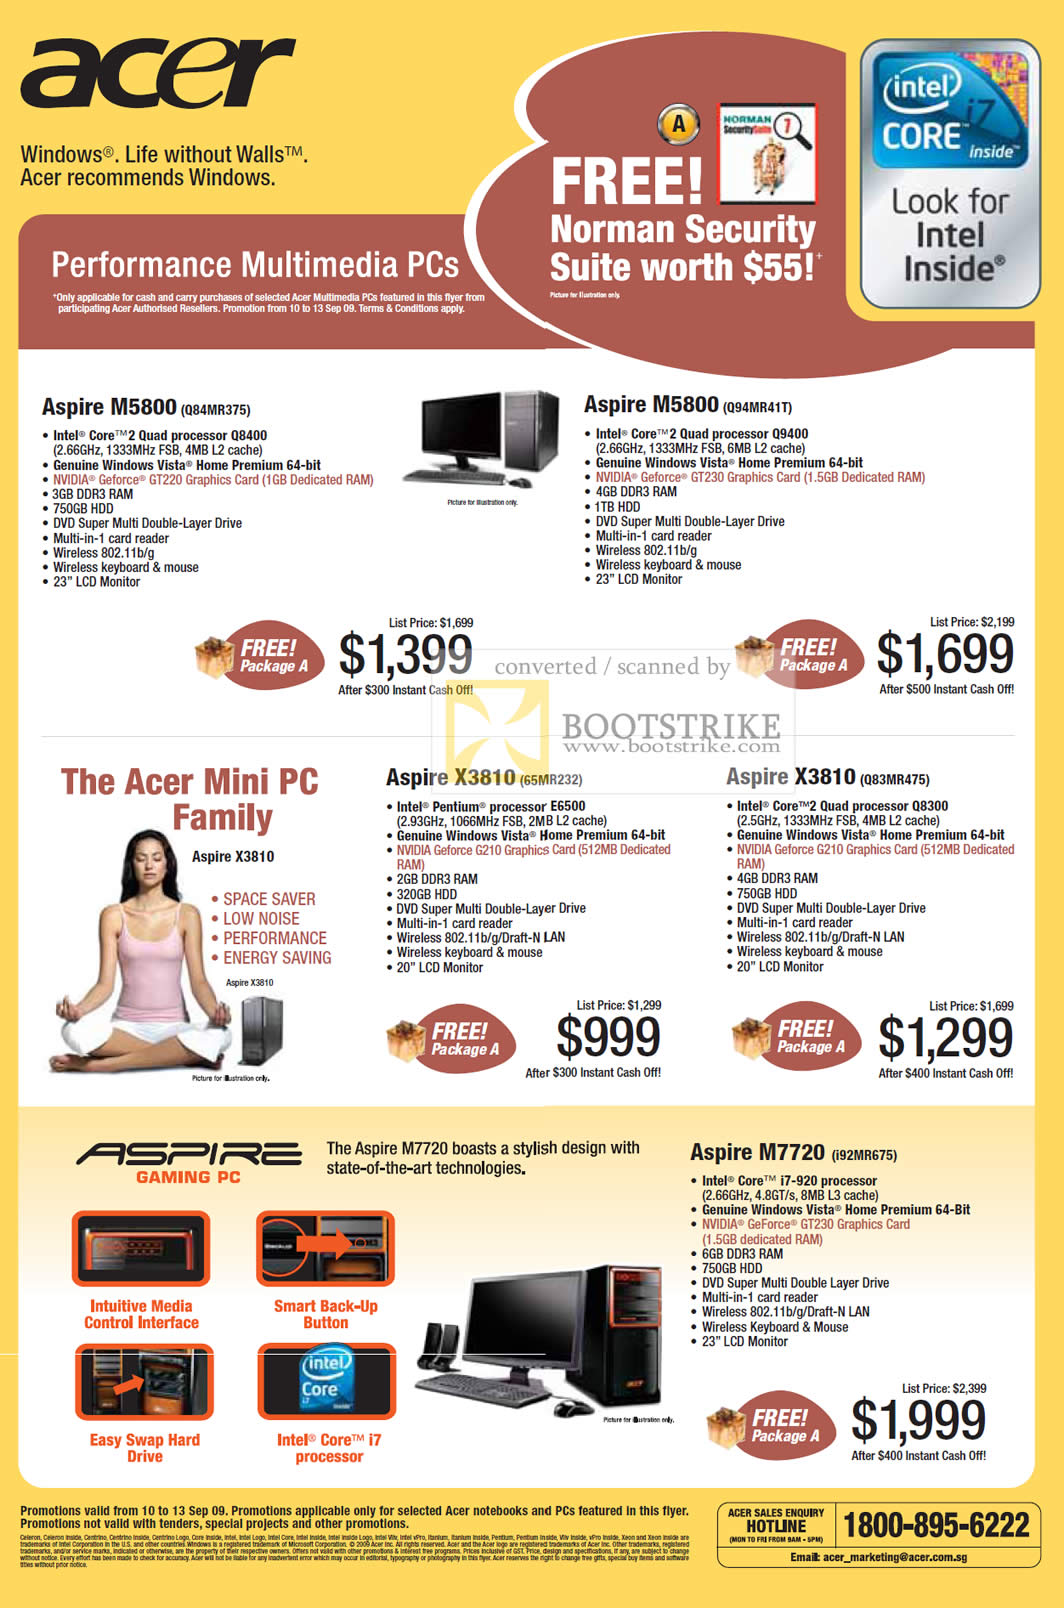 Comex 2009 price list image brochure of Acer Aspire Desktop PCs M5800 Mini PC X3810 M7720 Gaming